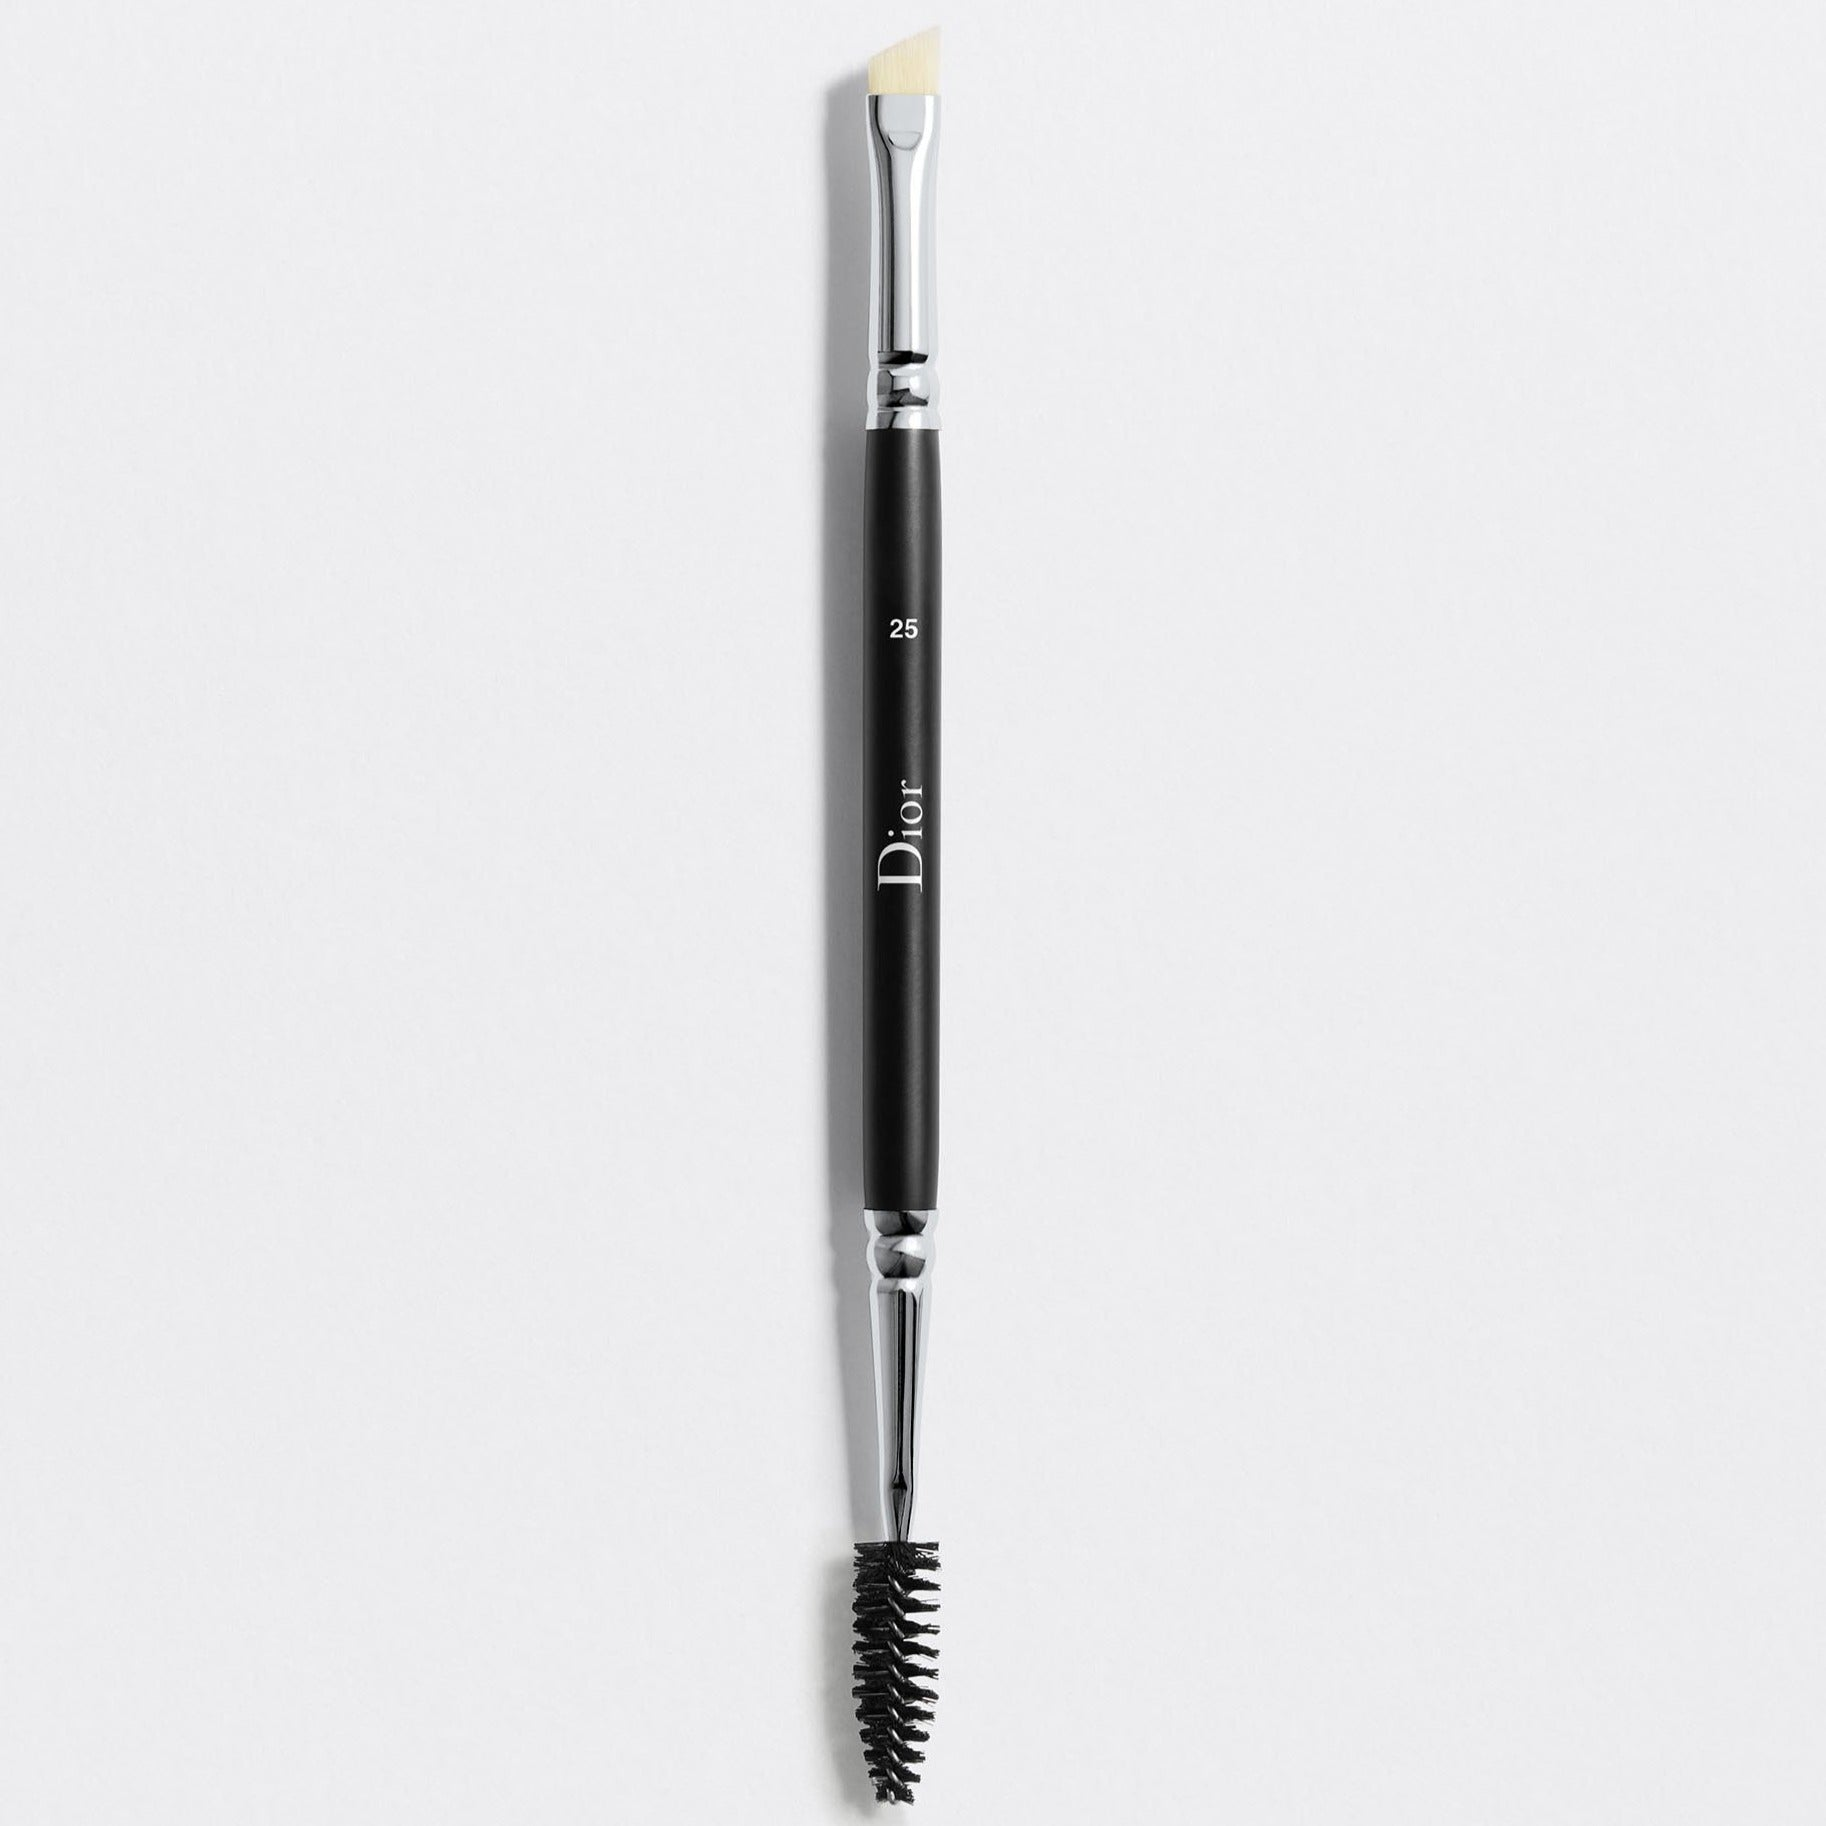 DIOR BACKSTAGE DOUBLE ENDED BROW BRUSH N° 25 | Double-ended brow brush n° 25